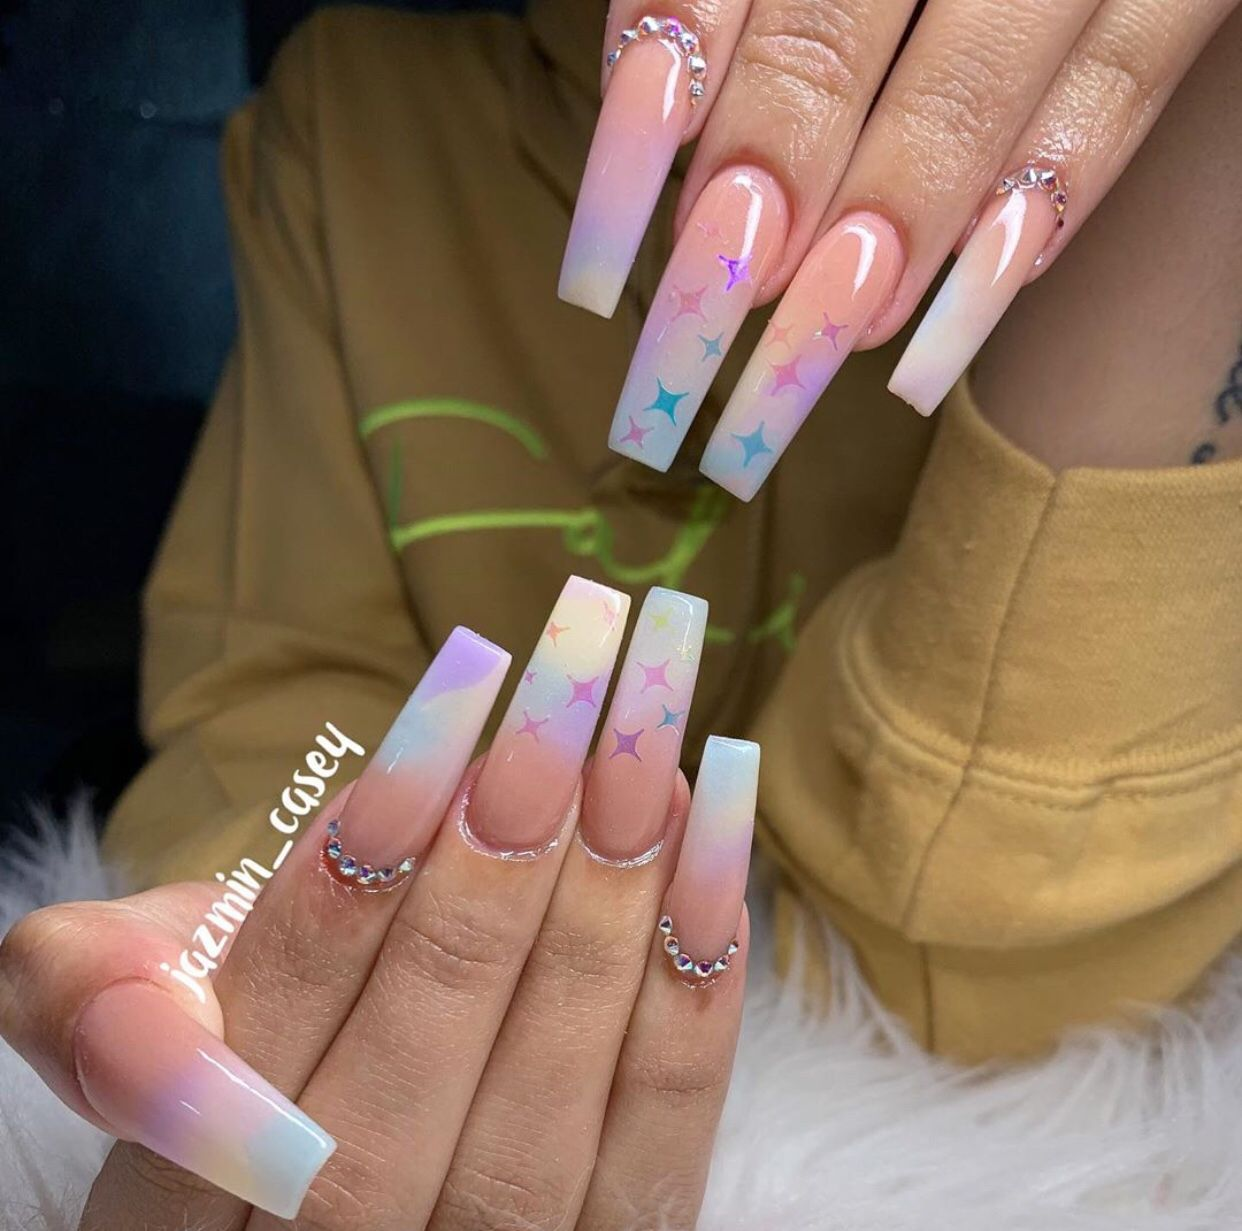 Long Coffin Nails Marble Bling Ombre Coffin Nails Long Bling Nails Coffin Nails Ombre